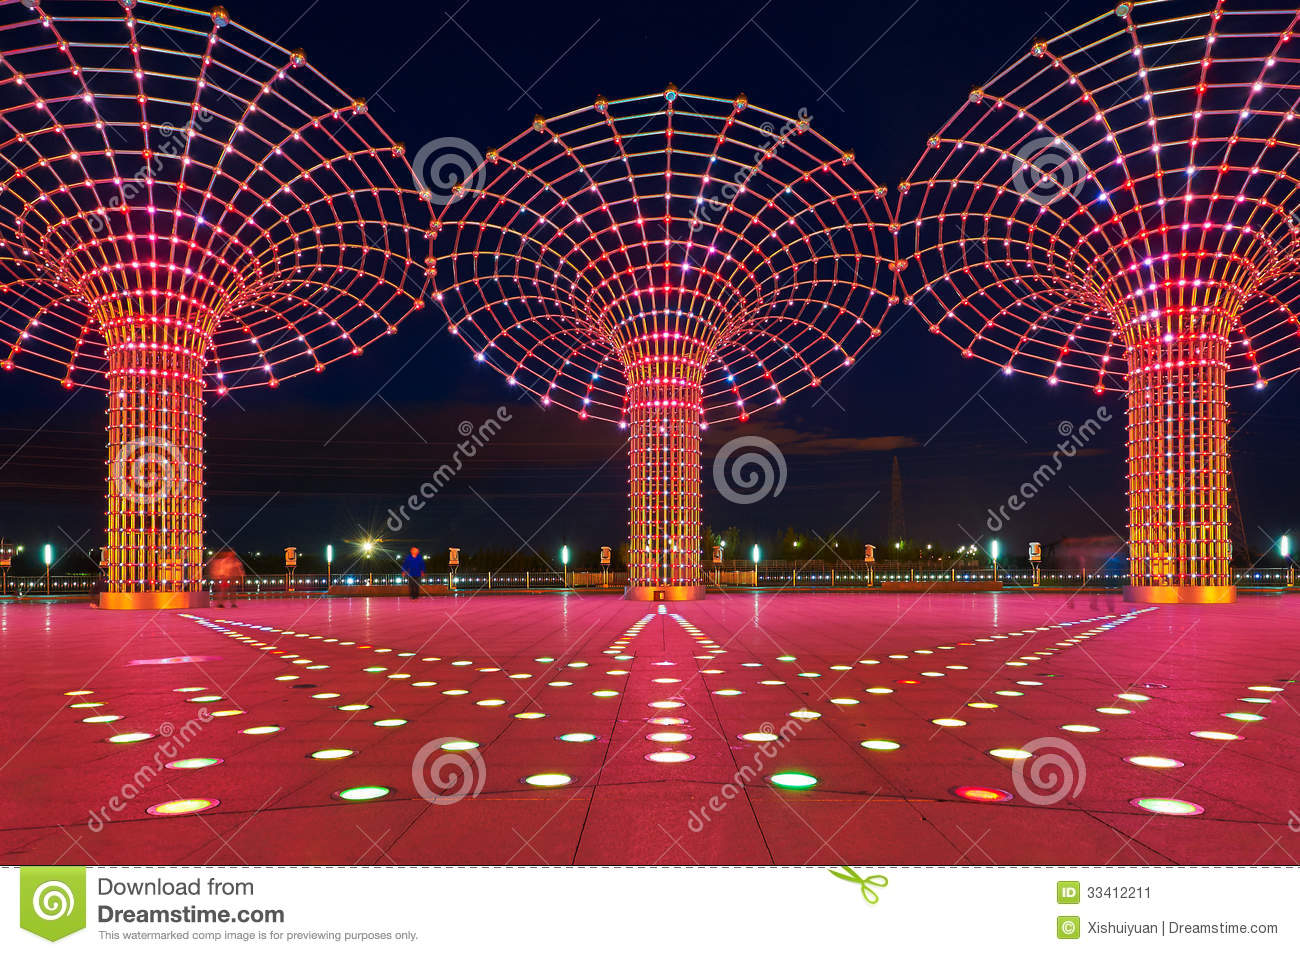 the beautiful lights stock image - image: 33412211